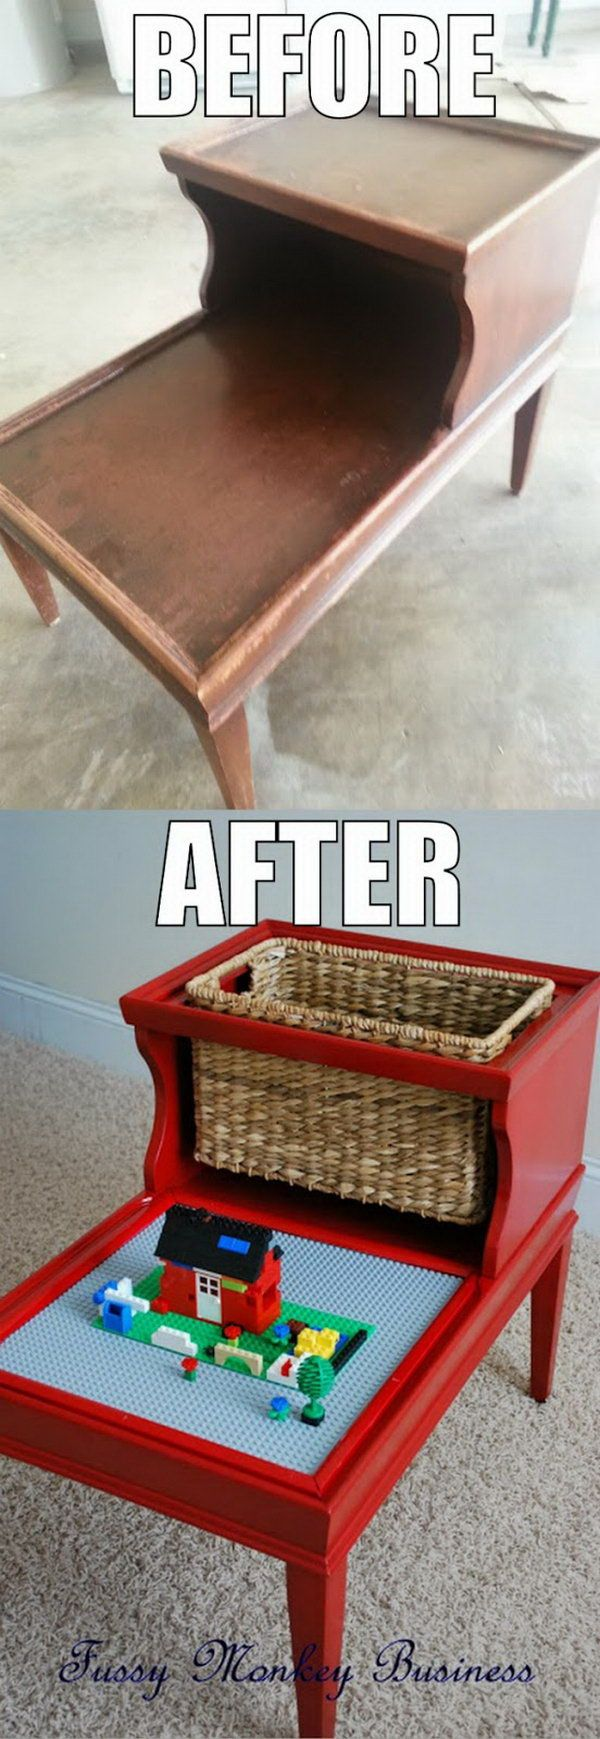 DIY LEGO table made from an old